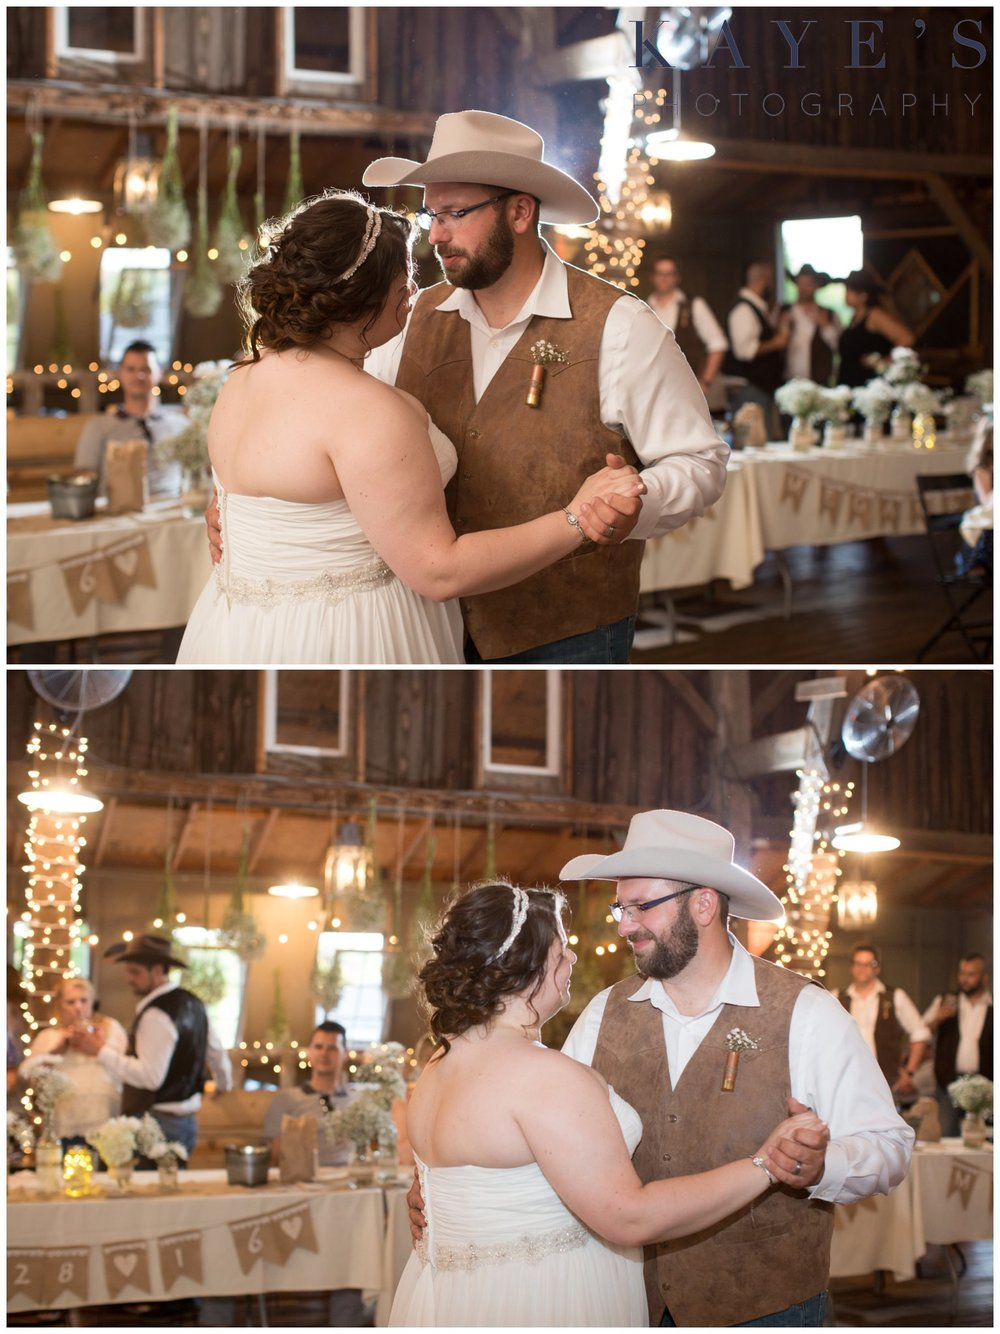 Hudsonville Michigan Wedding Photographer, Hudsonville Michigan Wedding Photography, The Old Wooden Barn Hudsonville Michigan Wedding photography, bride and groom first dance, bride and groom dancing, bride and groom in love